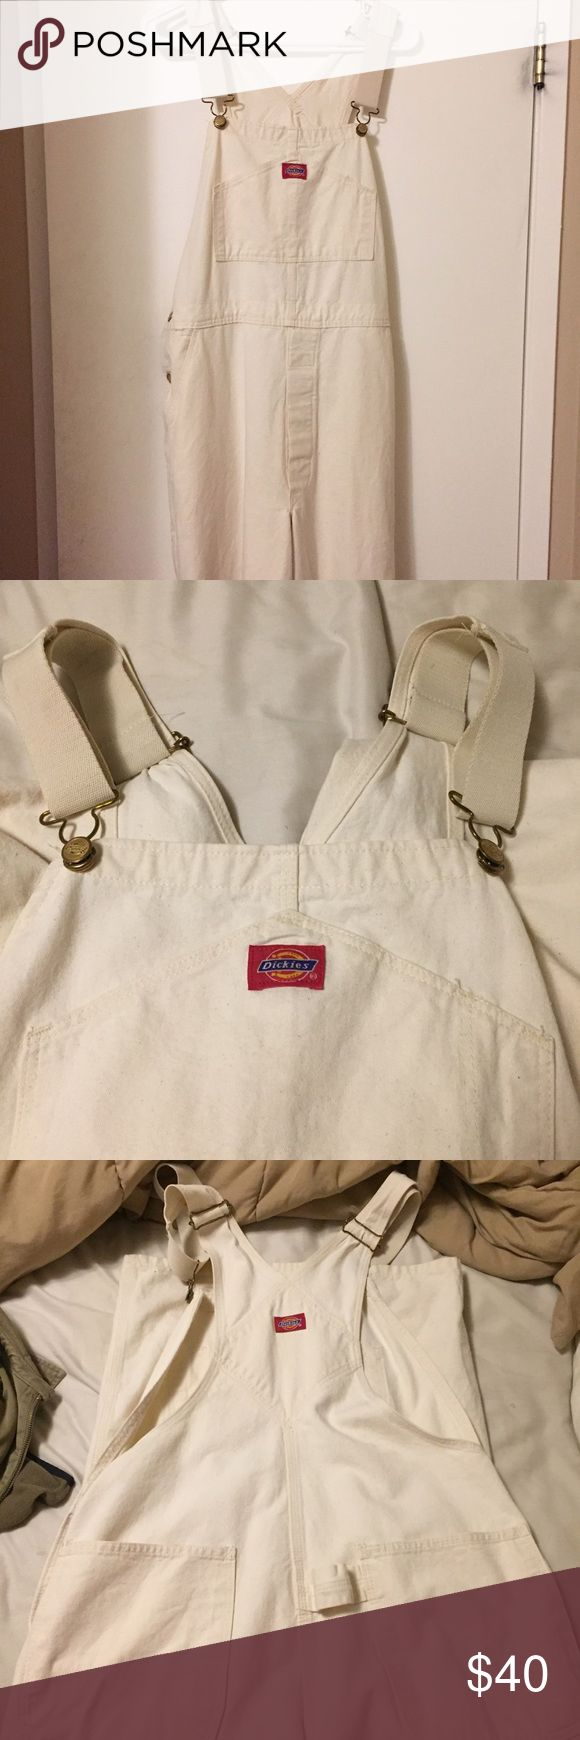 Clean flawless Off white dickies painter overalls! Off white cream dickies overalls. Beautiful details. Size 36 but fits me nice and I'm a 30. Just a little baggy. Dickies Other